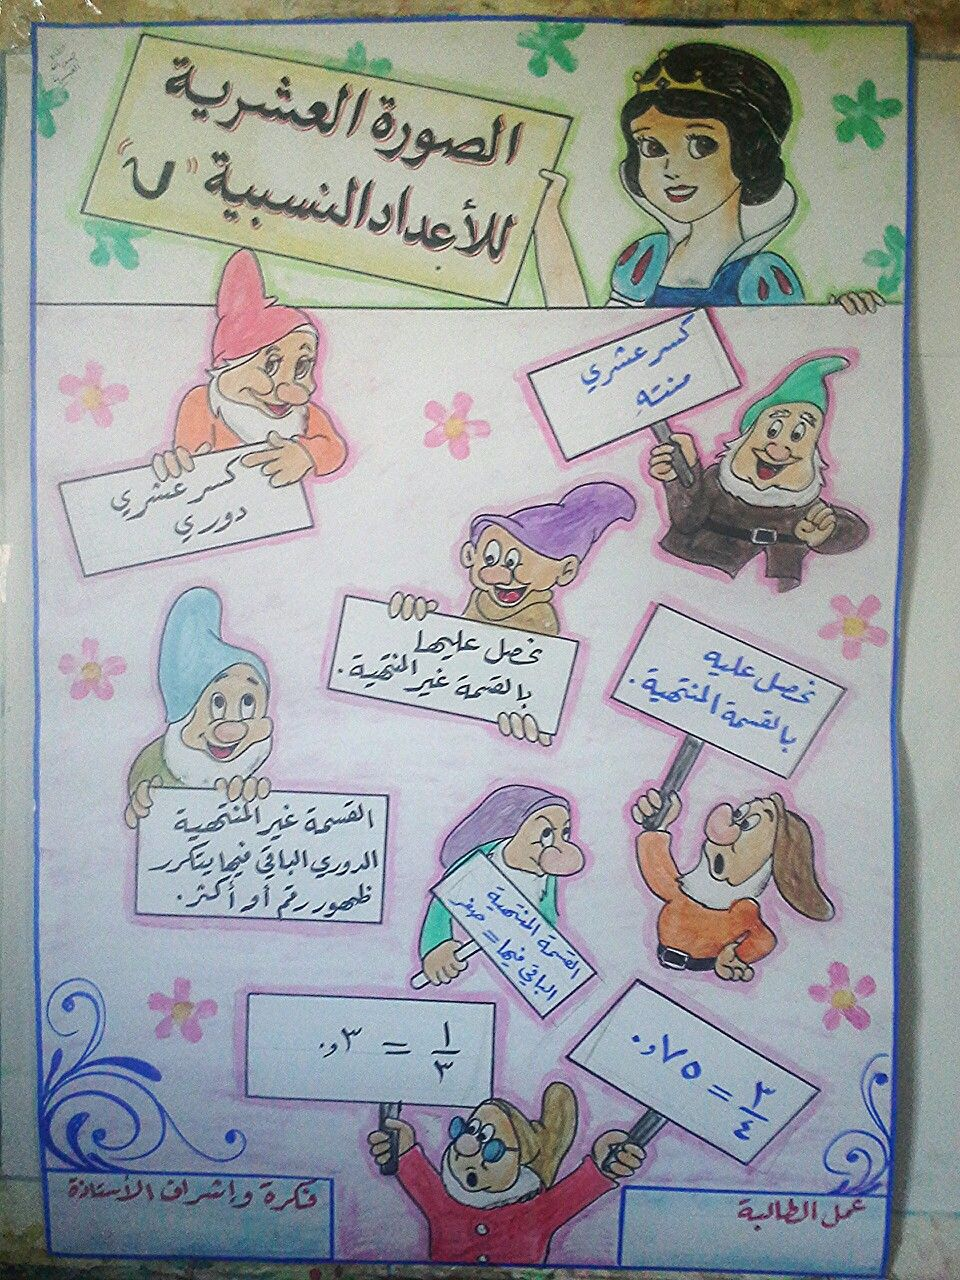 Pin By Waleed Raed On لوحات تعليميه Kids Education Classroom Tools Learning Arabic